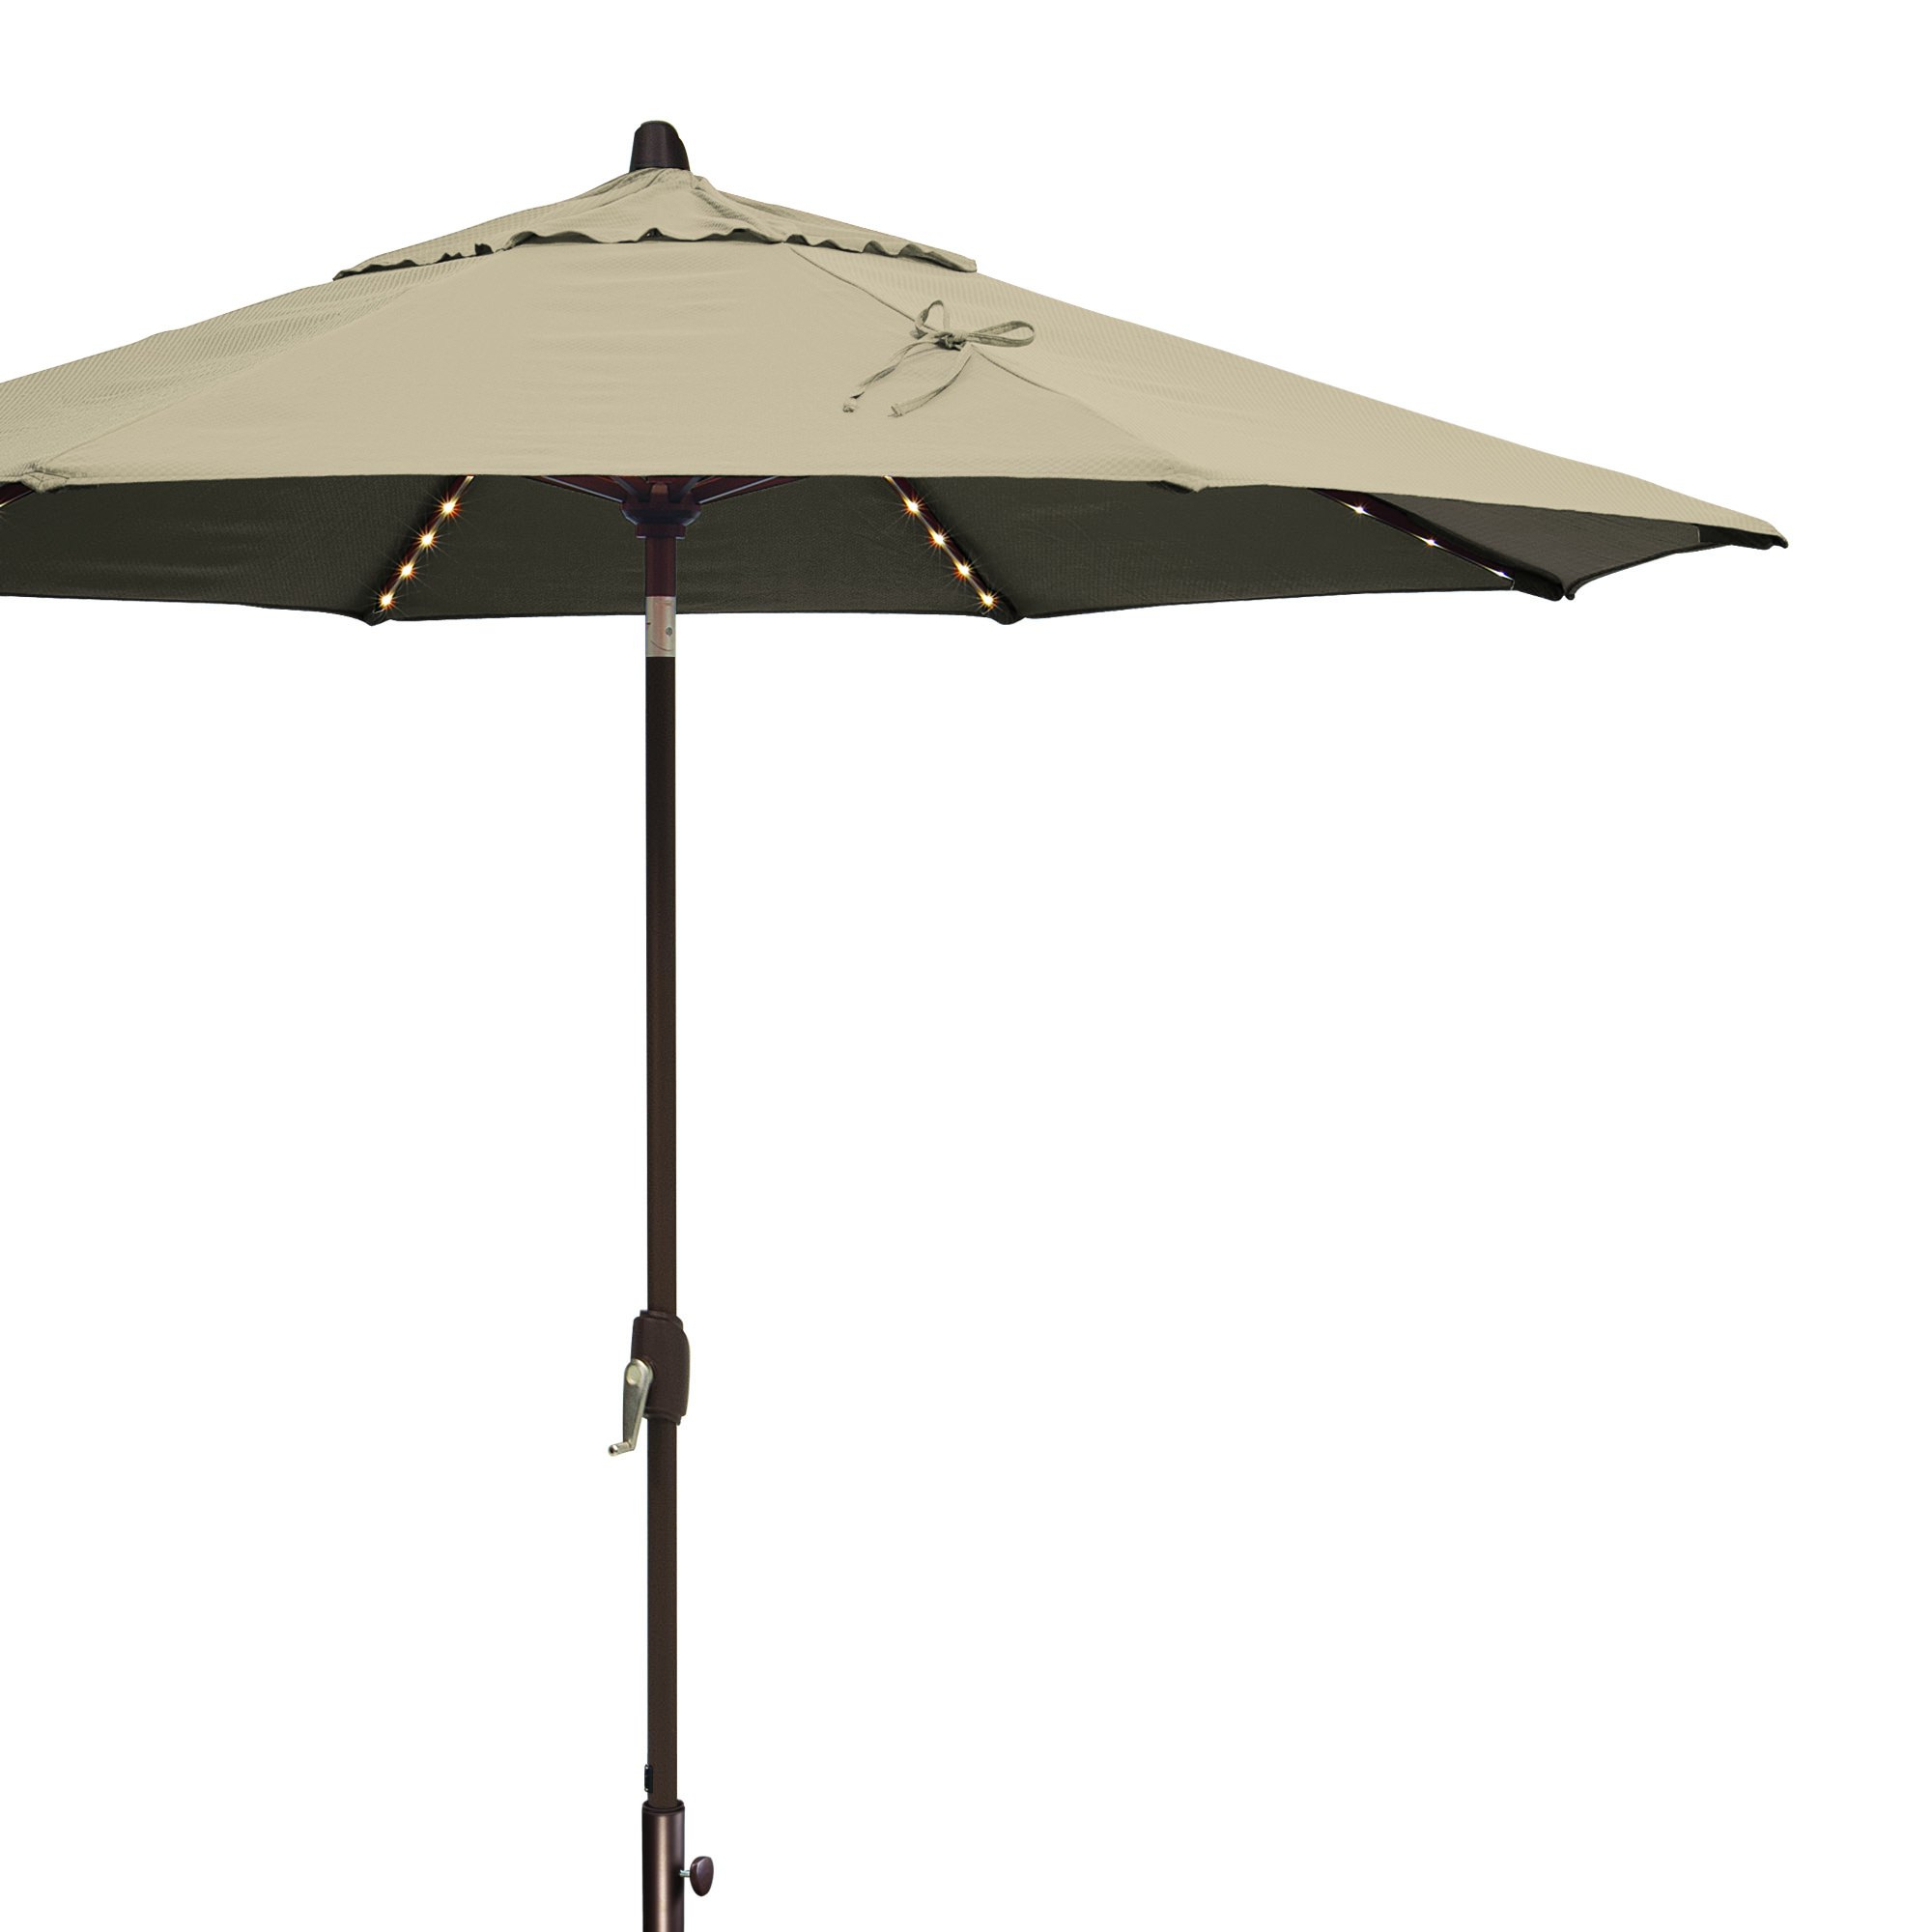 Lanai Pro 9' Octagon Market Umbrella With Star Lights – Beige Solefin Pertaining To Well Known Lanai Market Umbrellas (View 10 of 20)